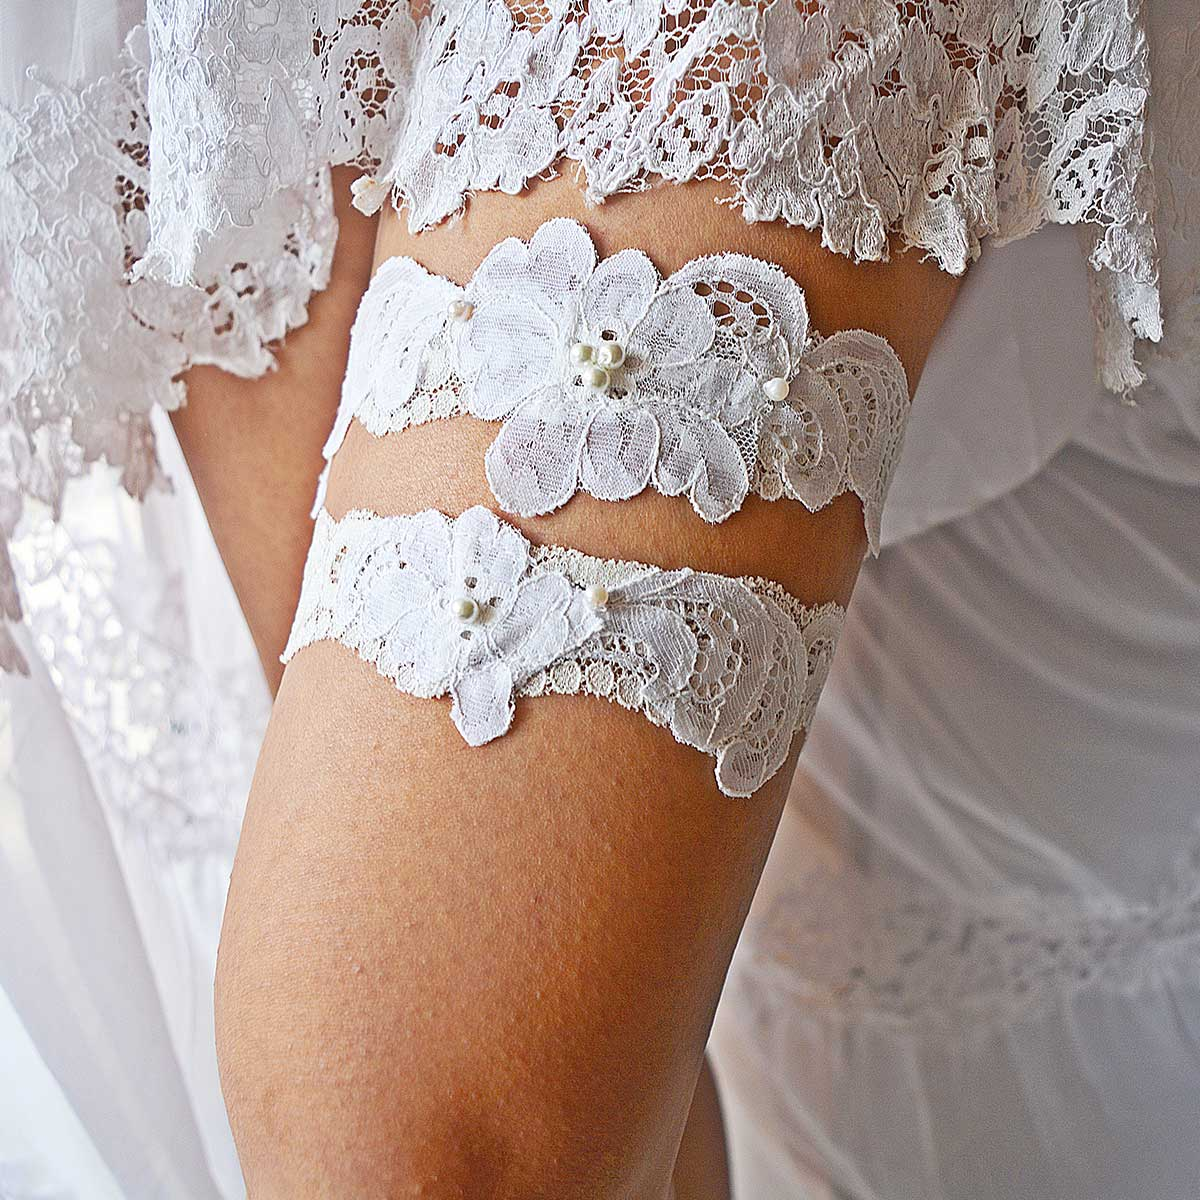 Off White Bridal Garter With White Pearls Handmade - Wedding Garter - SuzannaM Designs